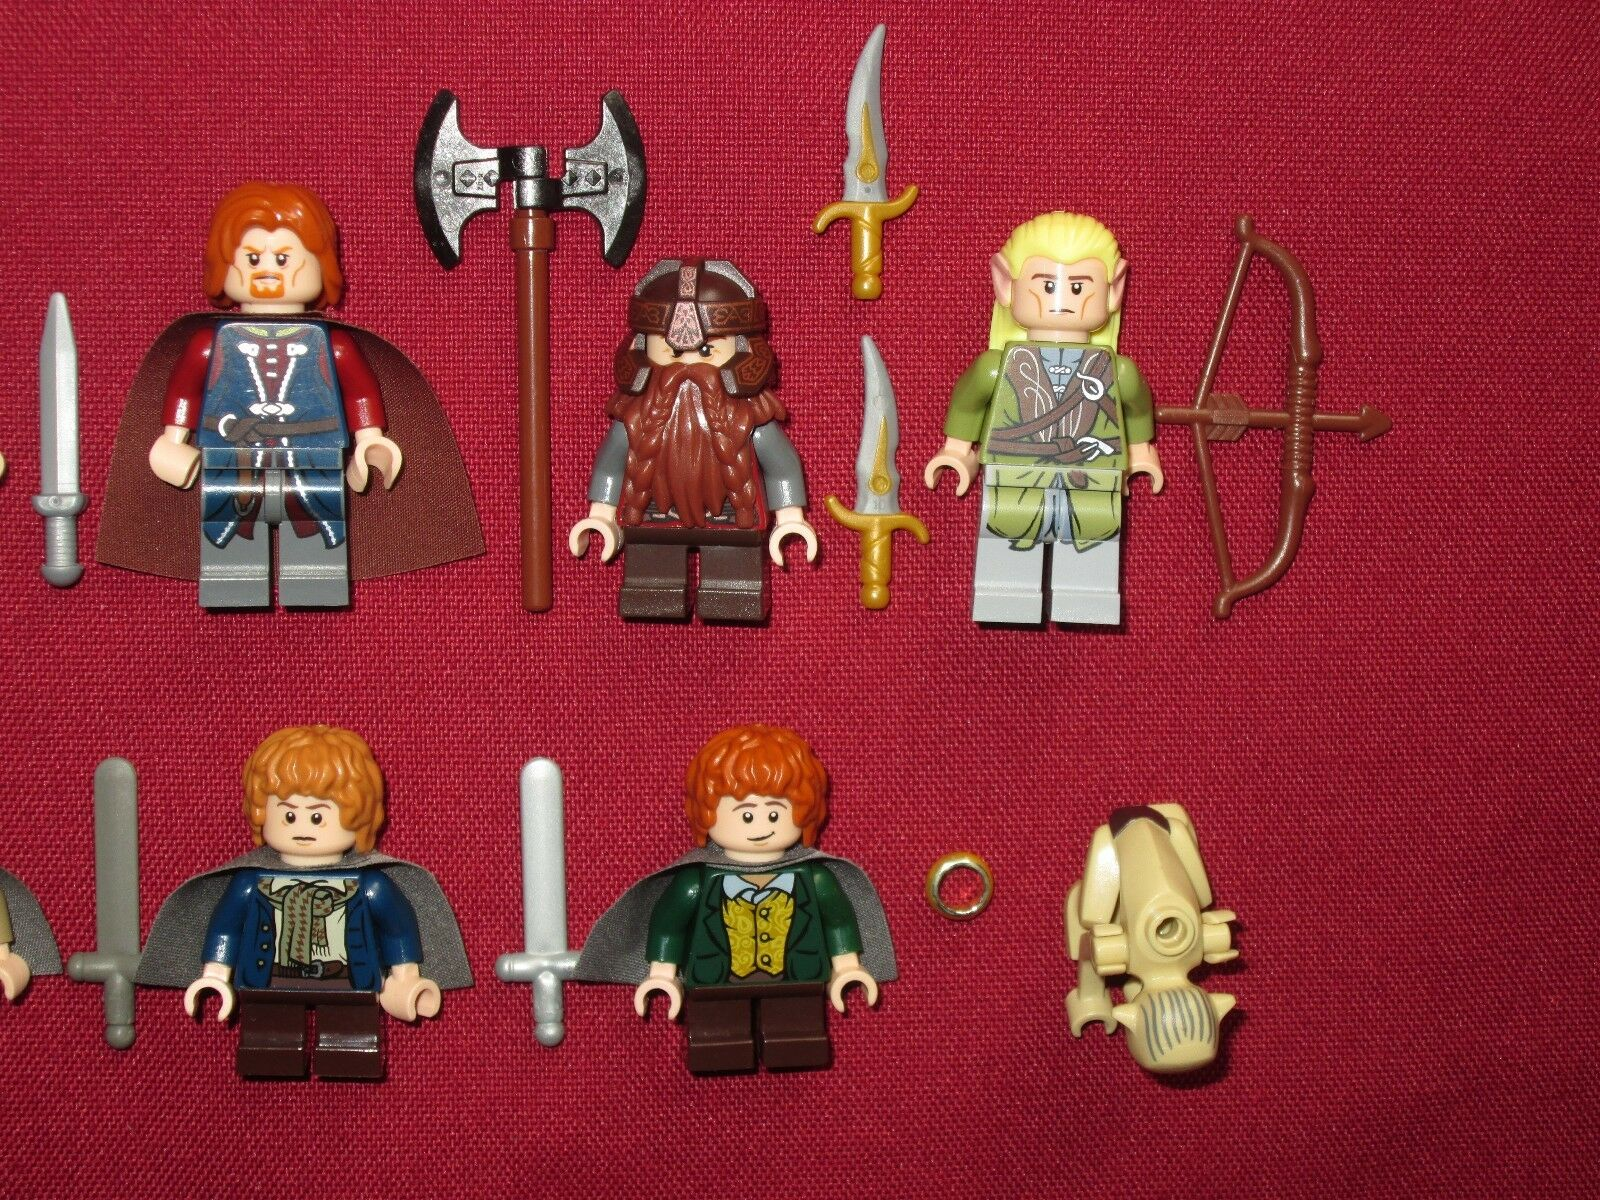 LEGO LOTR minifigures FELLOWSHIP OF OF OF THE RING LOT Gandalf,Boromir,Merry,Pippin + 7a5528